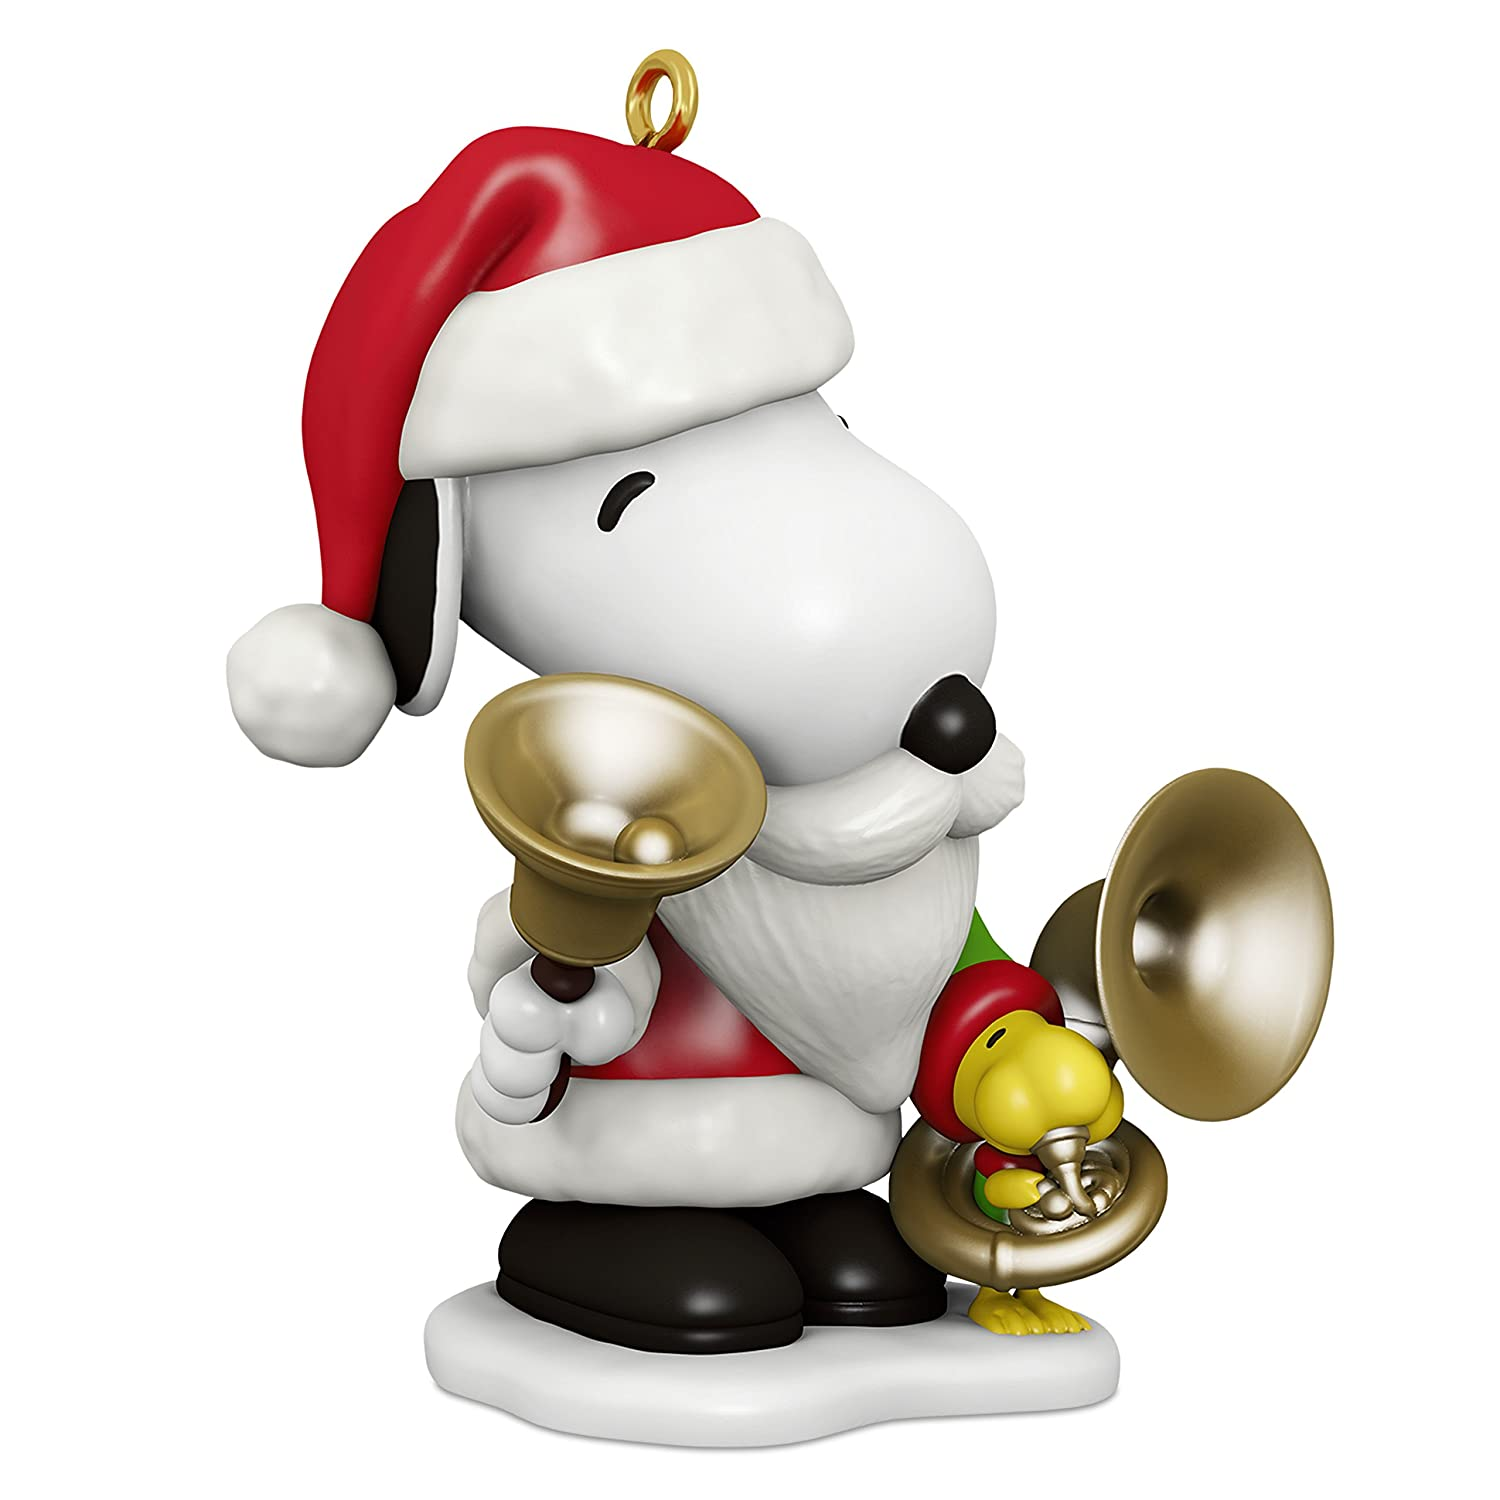 Snoopy And Woodstock Christmas Ornaments.Hallmark Keepsake Christmas Ornament 2018 Year Dated Peanuts Spotlight On Snoopy Bell Ringer Snoopy